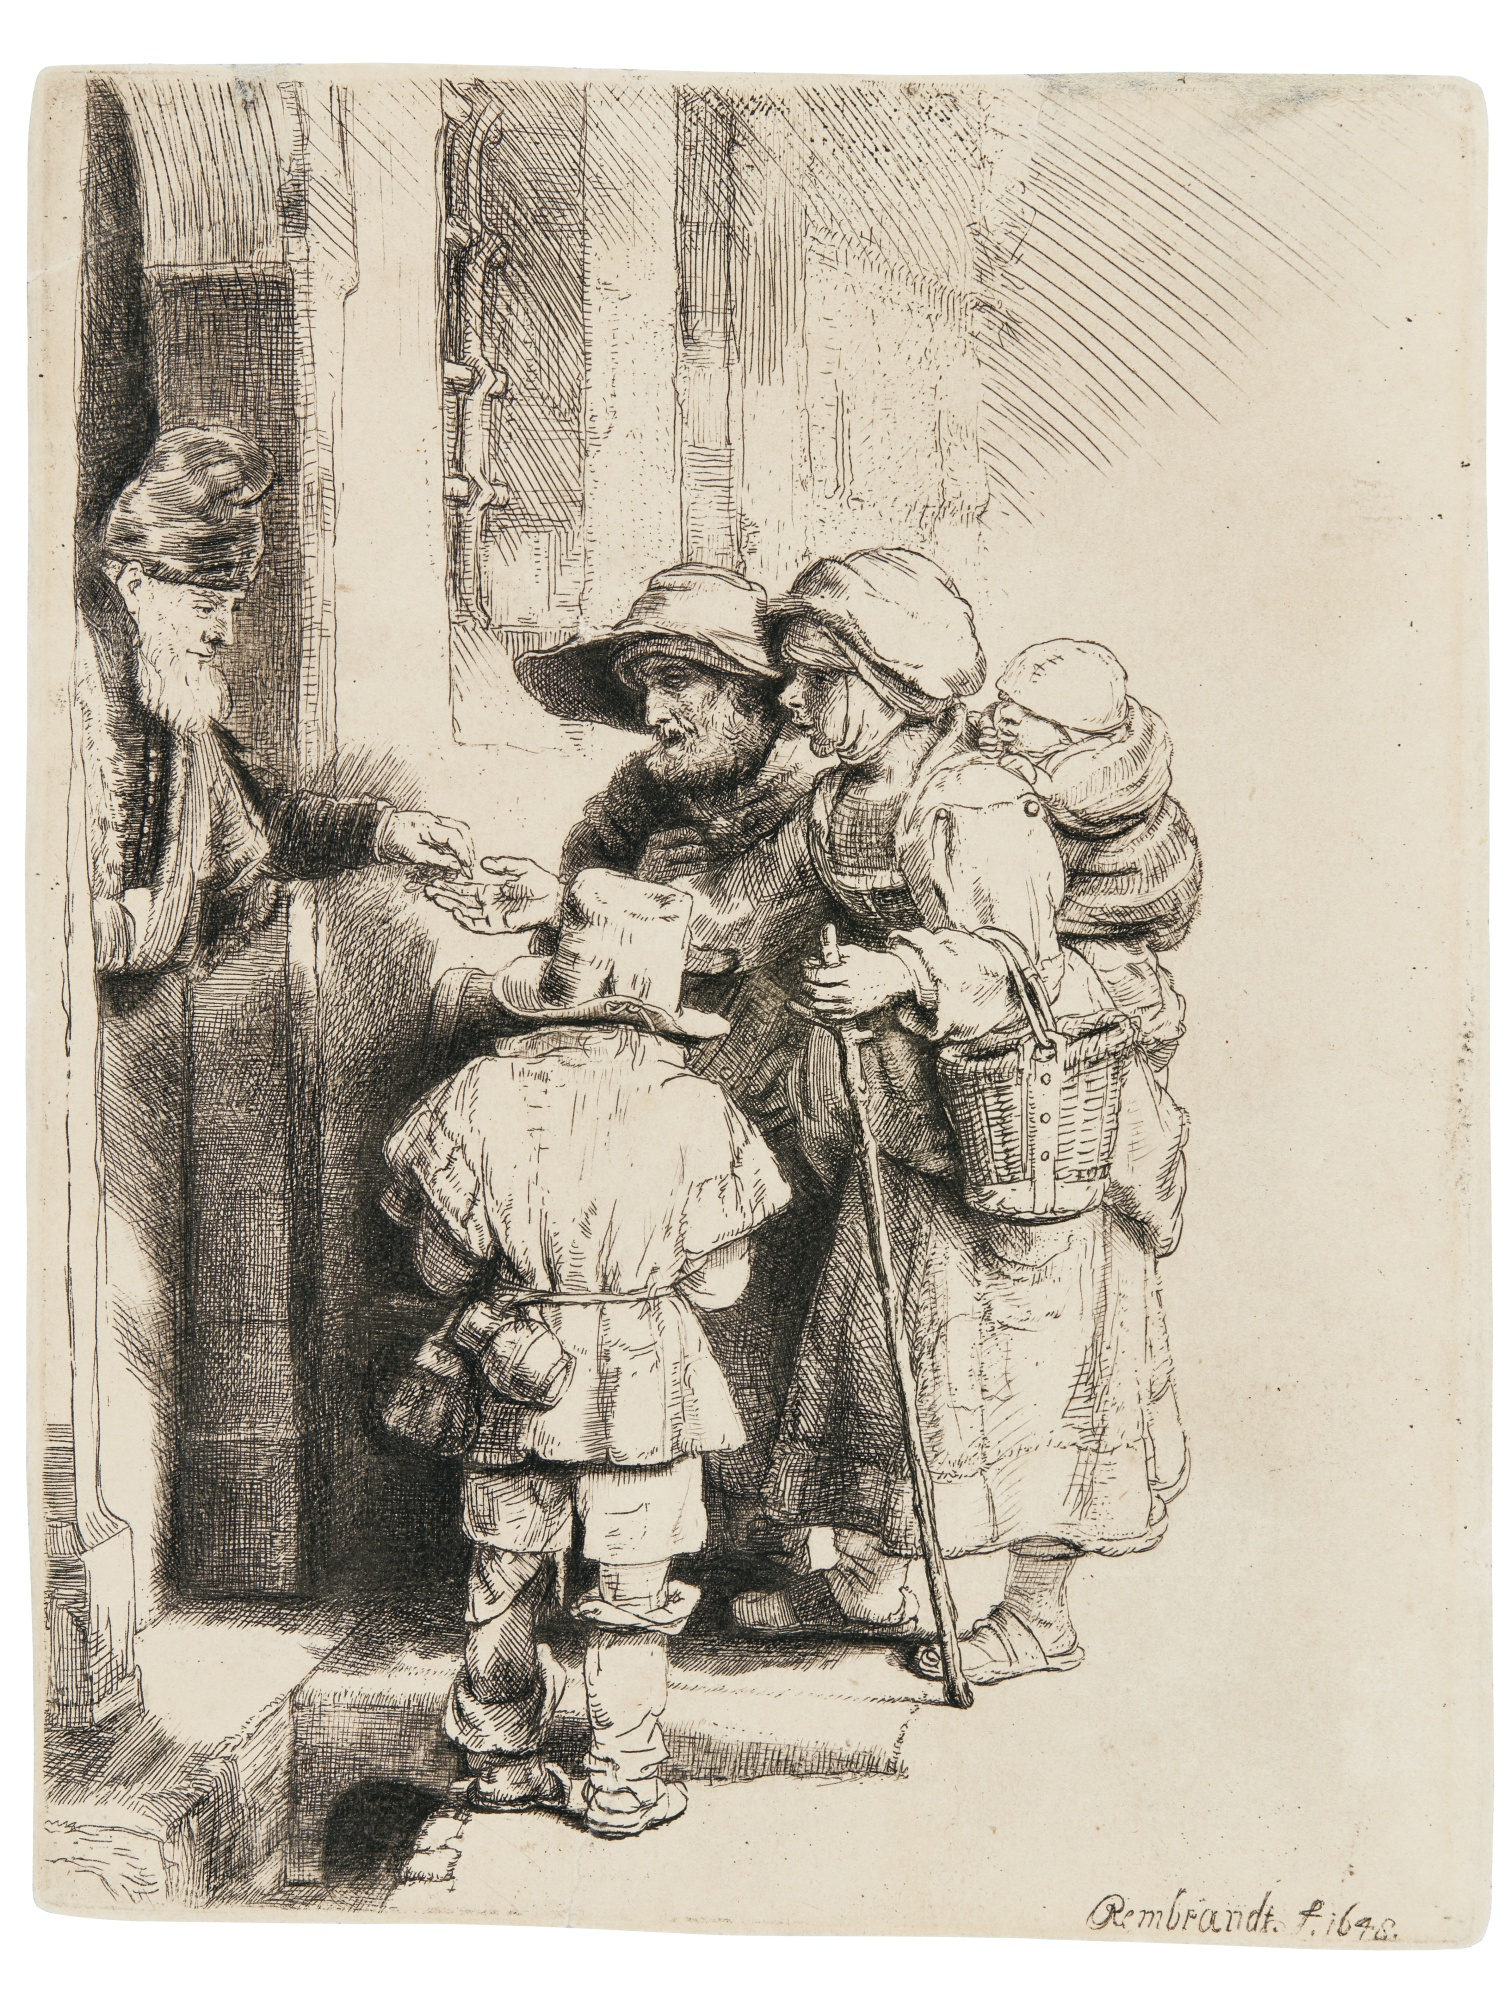 Rembrandt van Rijn-A Blind Hurdy-Gurdy Player And Family Receiving Alms(B. Holl. 176; New Holl. 243; H. 233)-1648